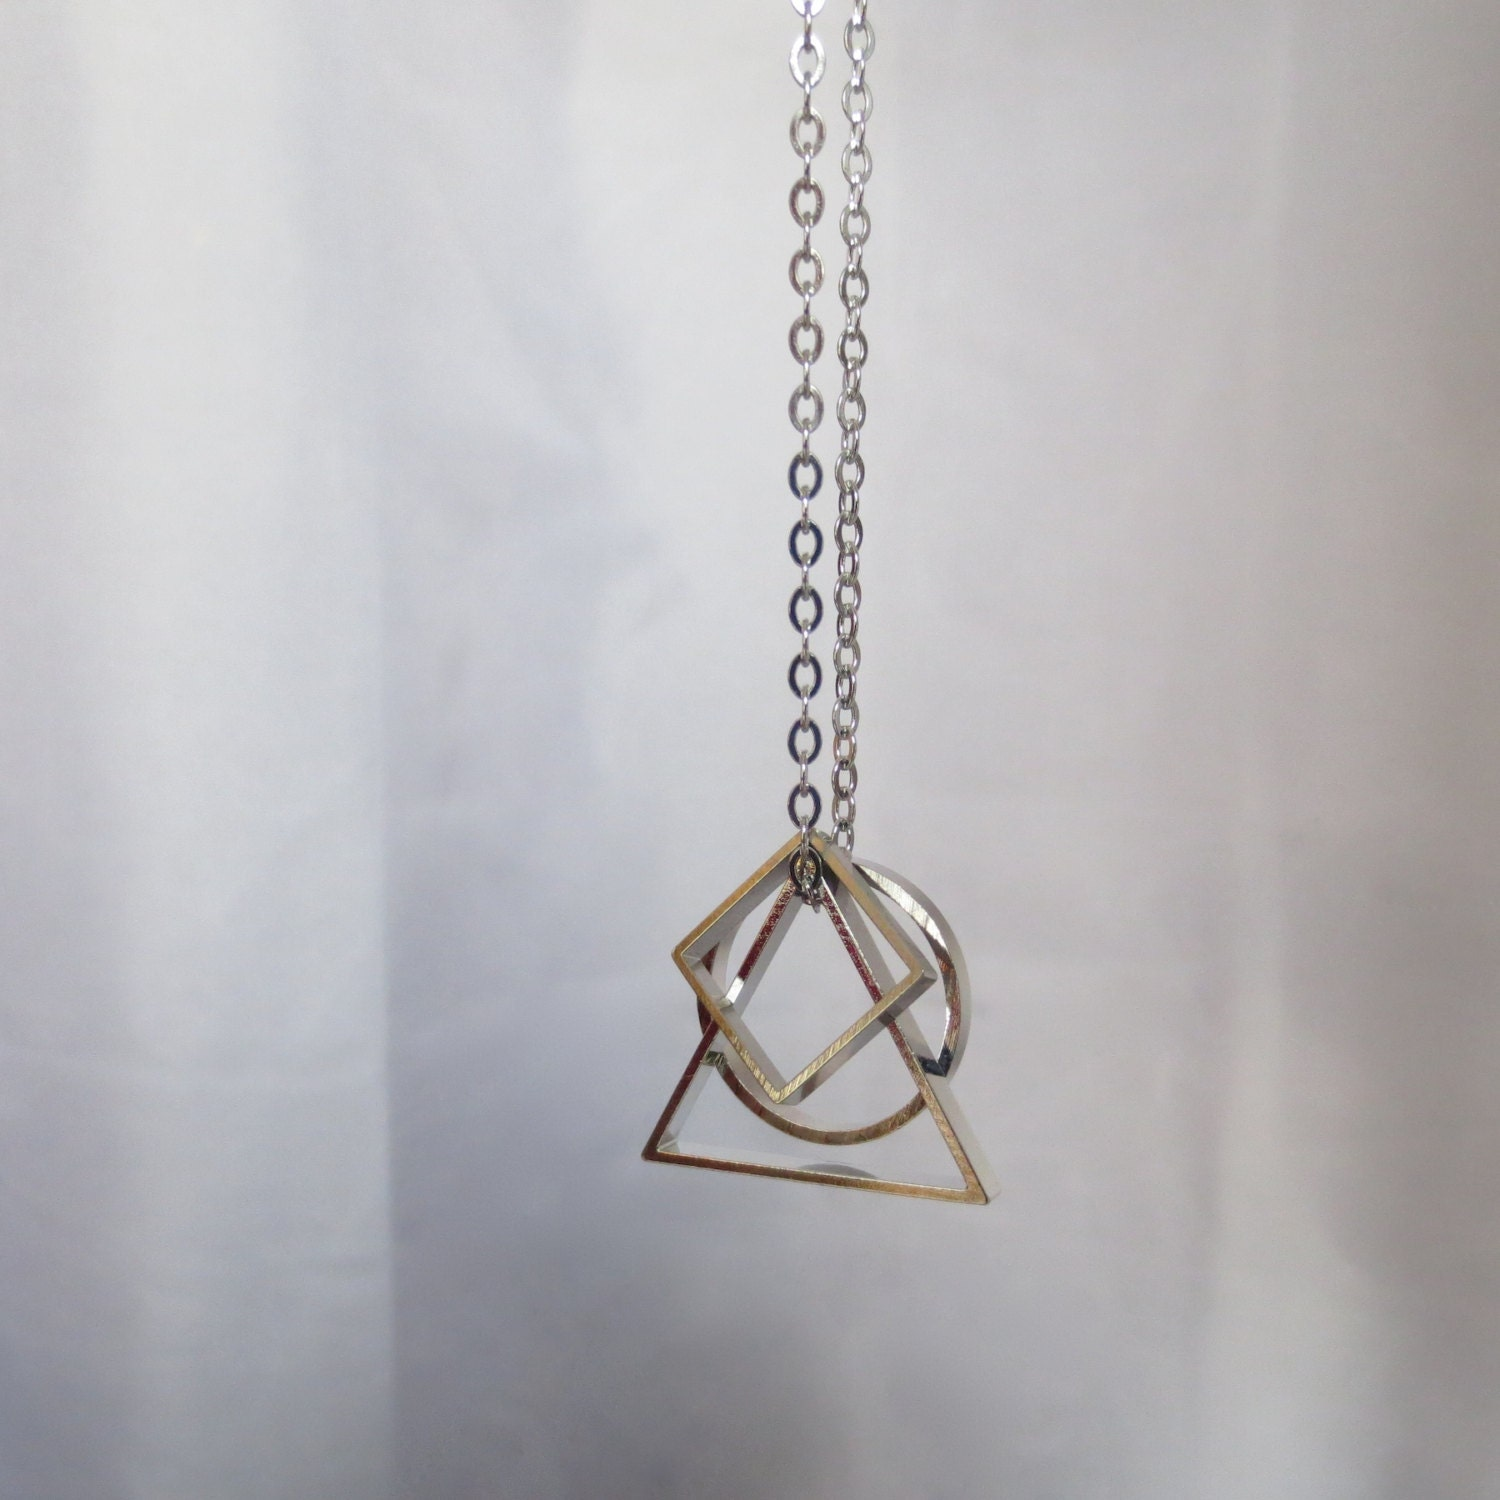 pendant necklace original solid product amaraamara by geometric gold amara with chain